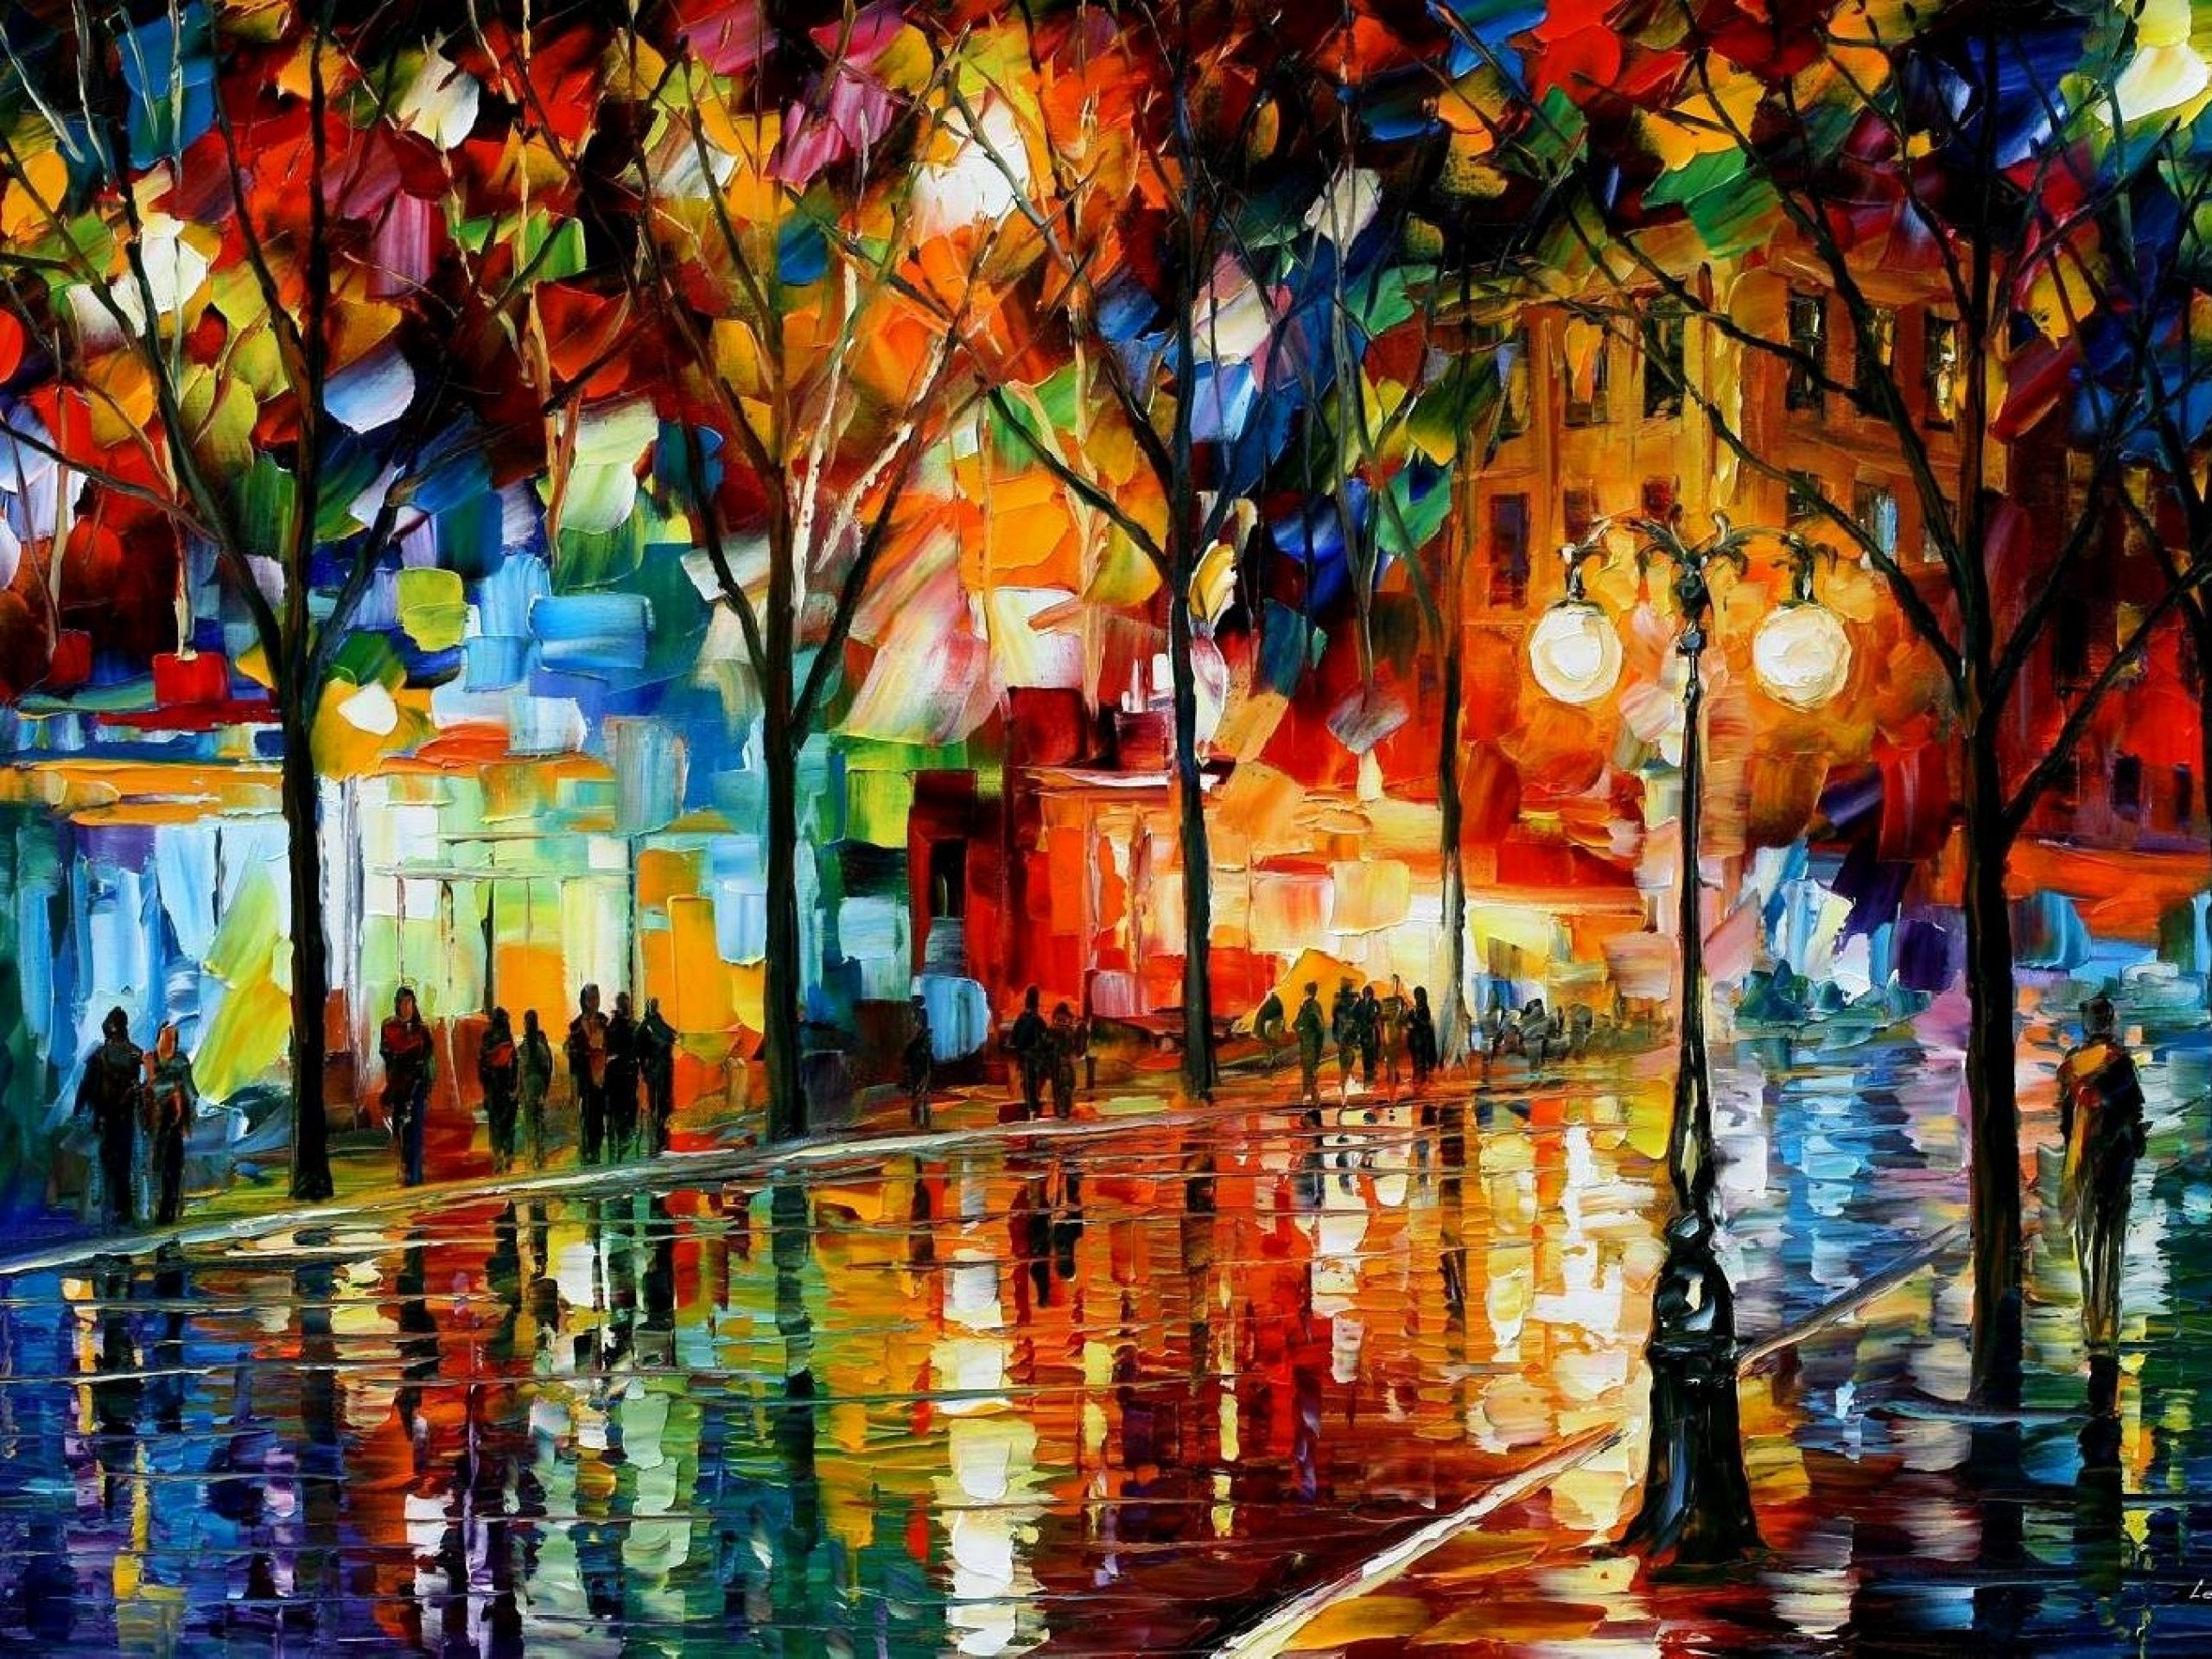 Download Wallpapers Download 2560x1920 Paintings Trees Multicolor Leonid Afremov 1452x1015 Wallpaper Art Hd Wallpaper Hi Res Canvas Painting Art Oil Painting